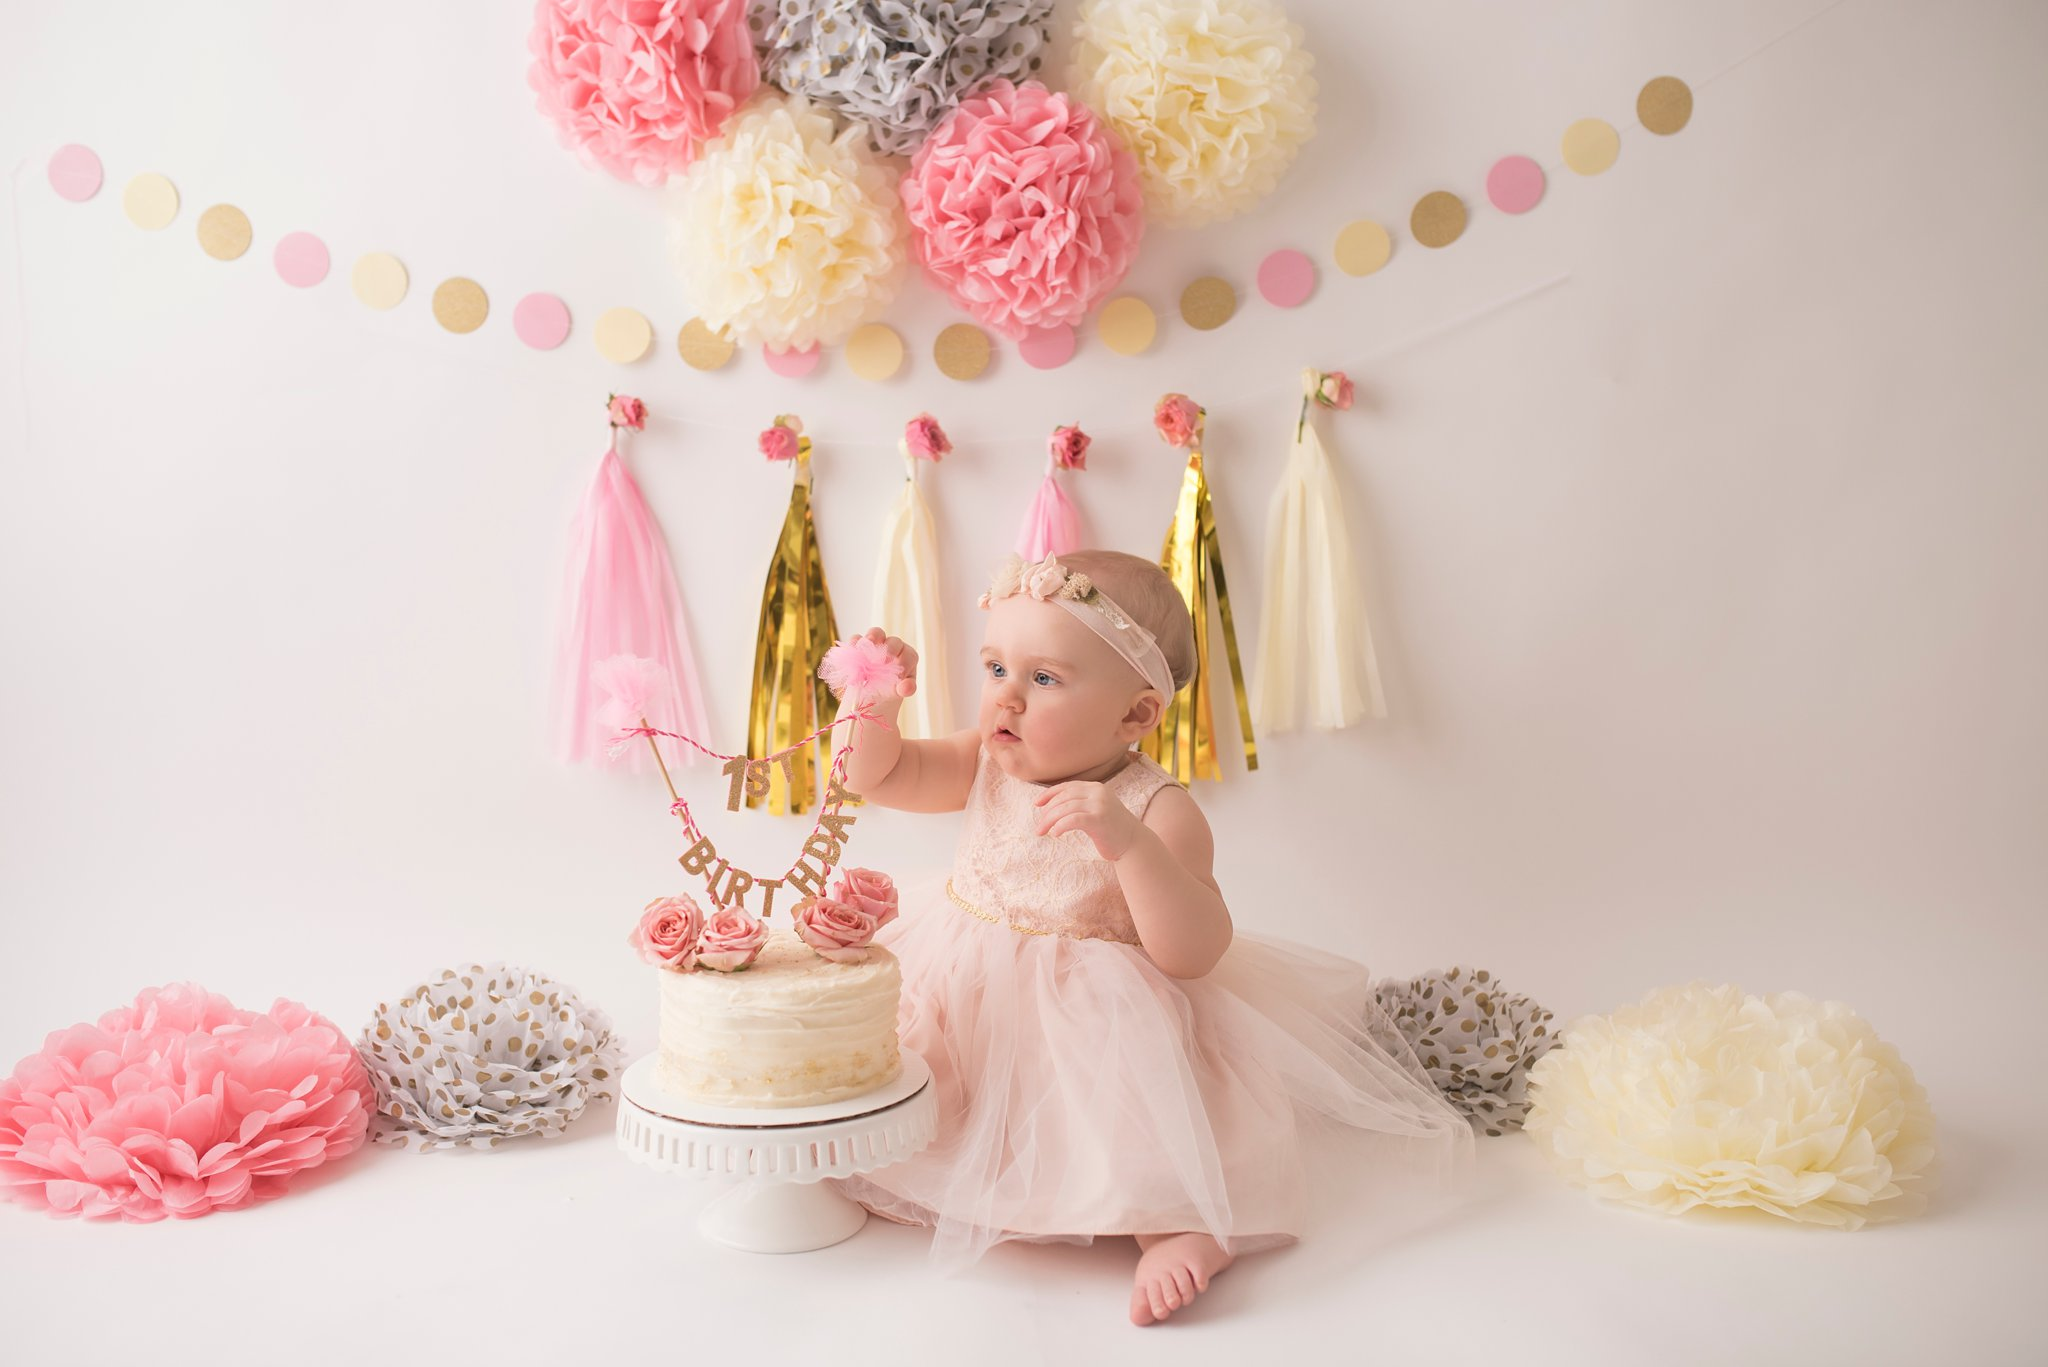 jacquelinemariephotography-cakesmash-first-birthday-photographer-columbusohio_2.jpg